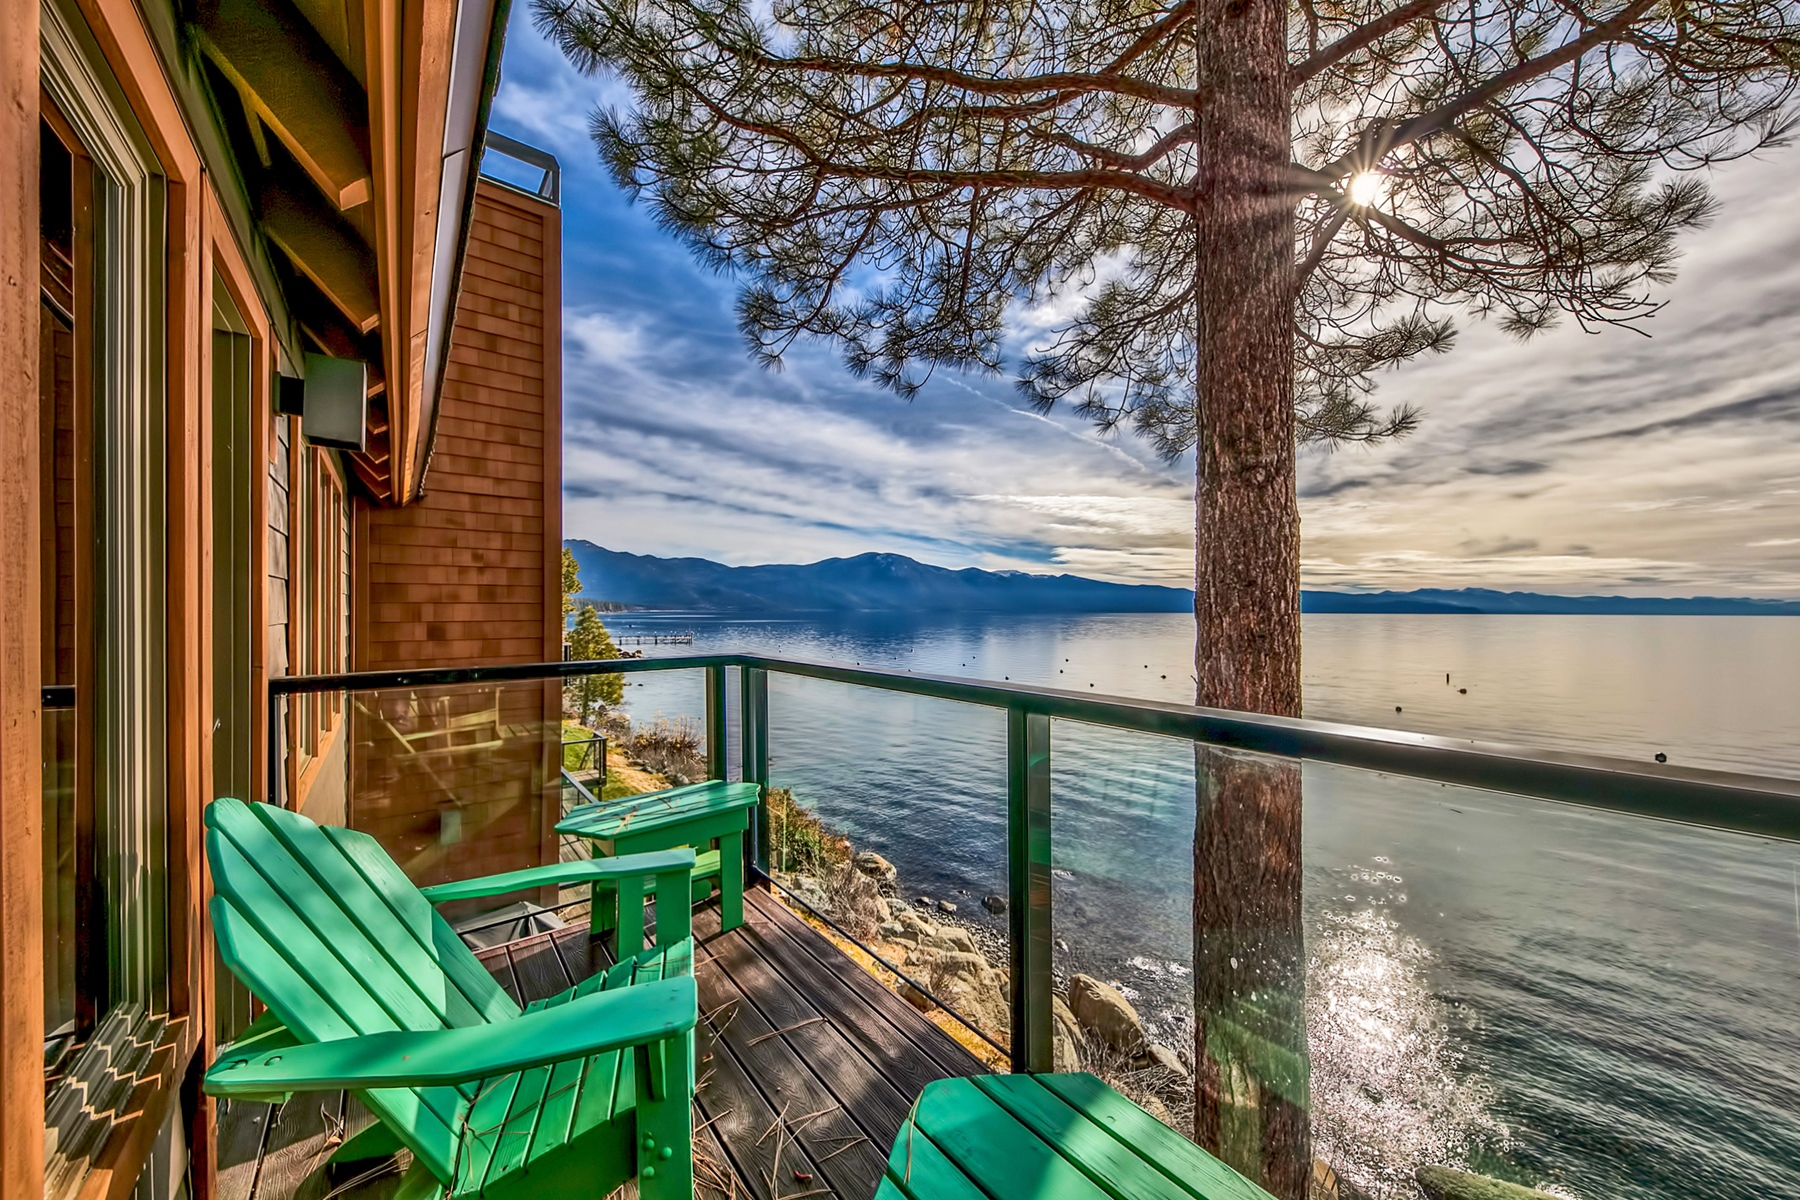 Property for Active at 501 Lakeshore Blvd. #54, Incline Village, Nevada 501 Lakeshore Blvd. #54 Incline Village, Nevada 89451 United States